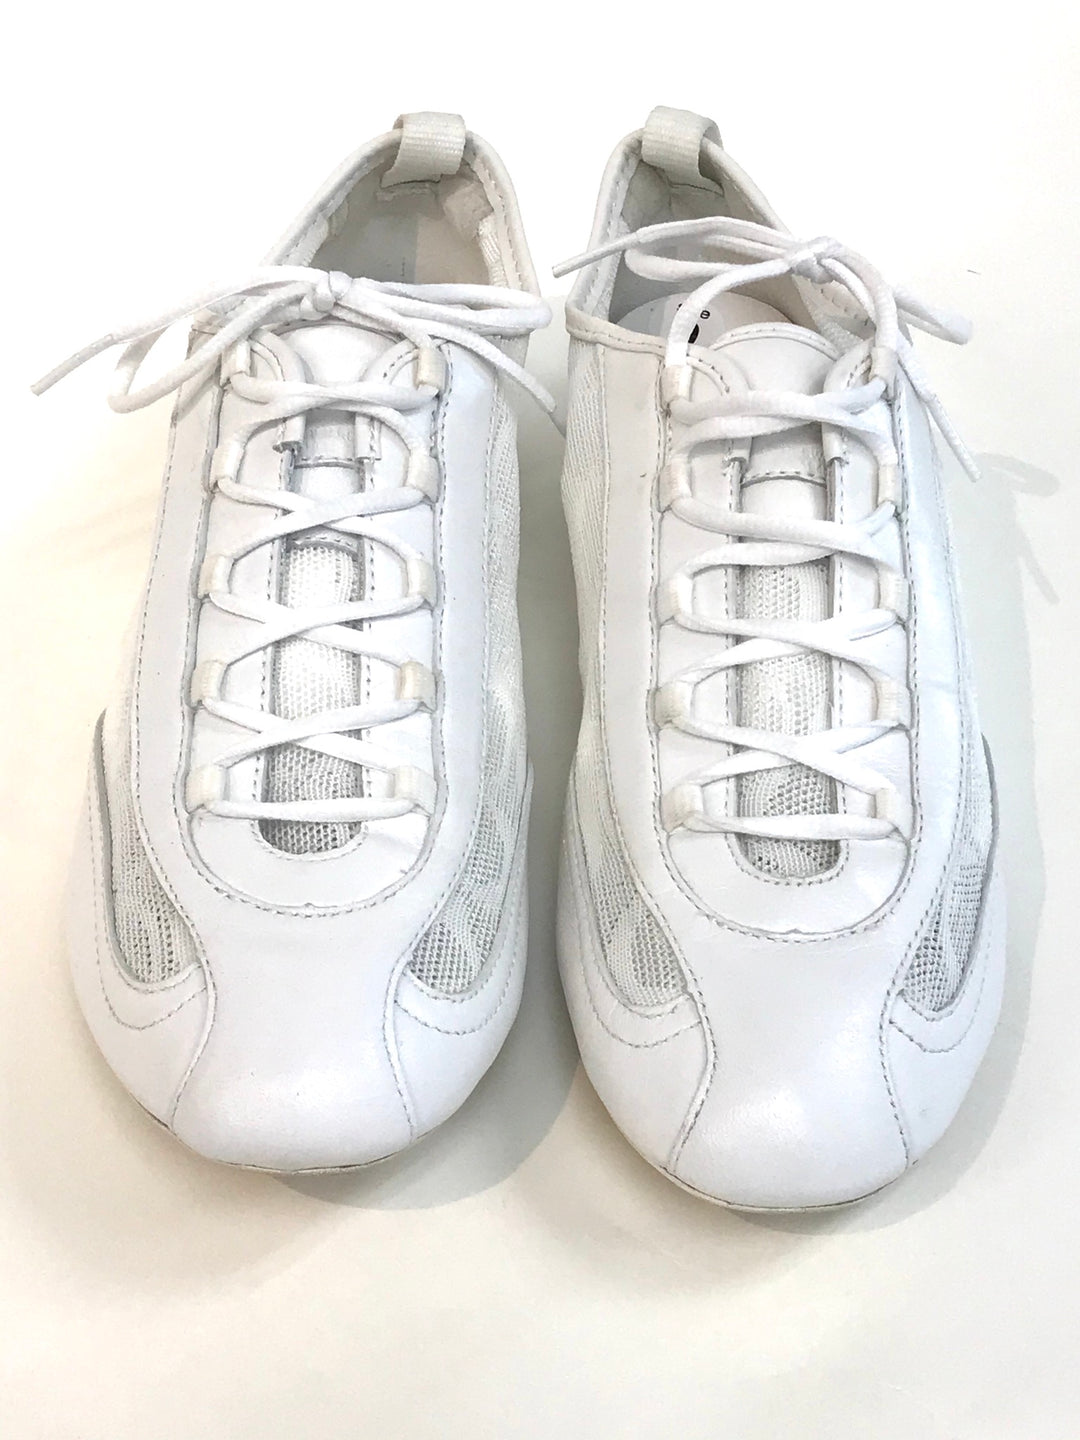 Primary Photo - BRAND: COACH <BR>STYLE: SHOES ATHLETIC <BR>COLOR: WHITE <BR>SIZE: 9 <BR>SKU: 262-26211-138891<BR>WEAR SHOWS - AS IS